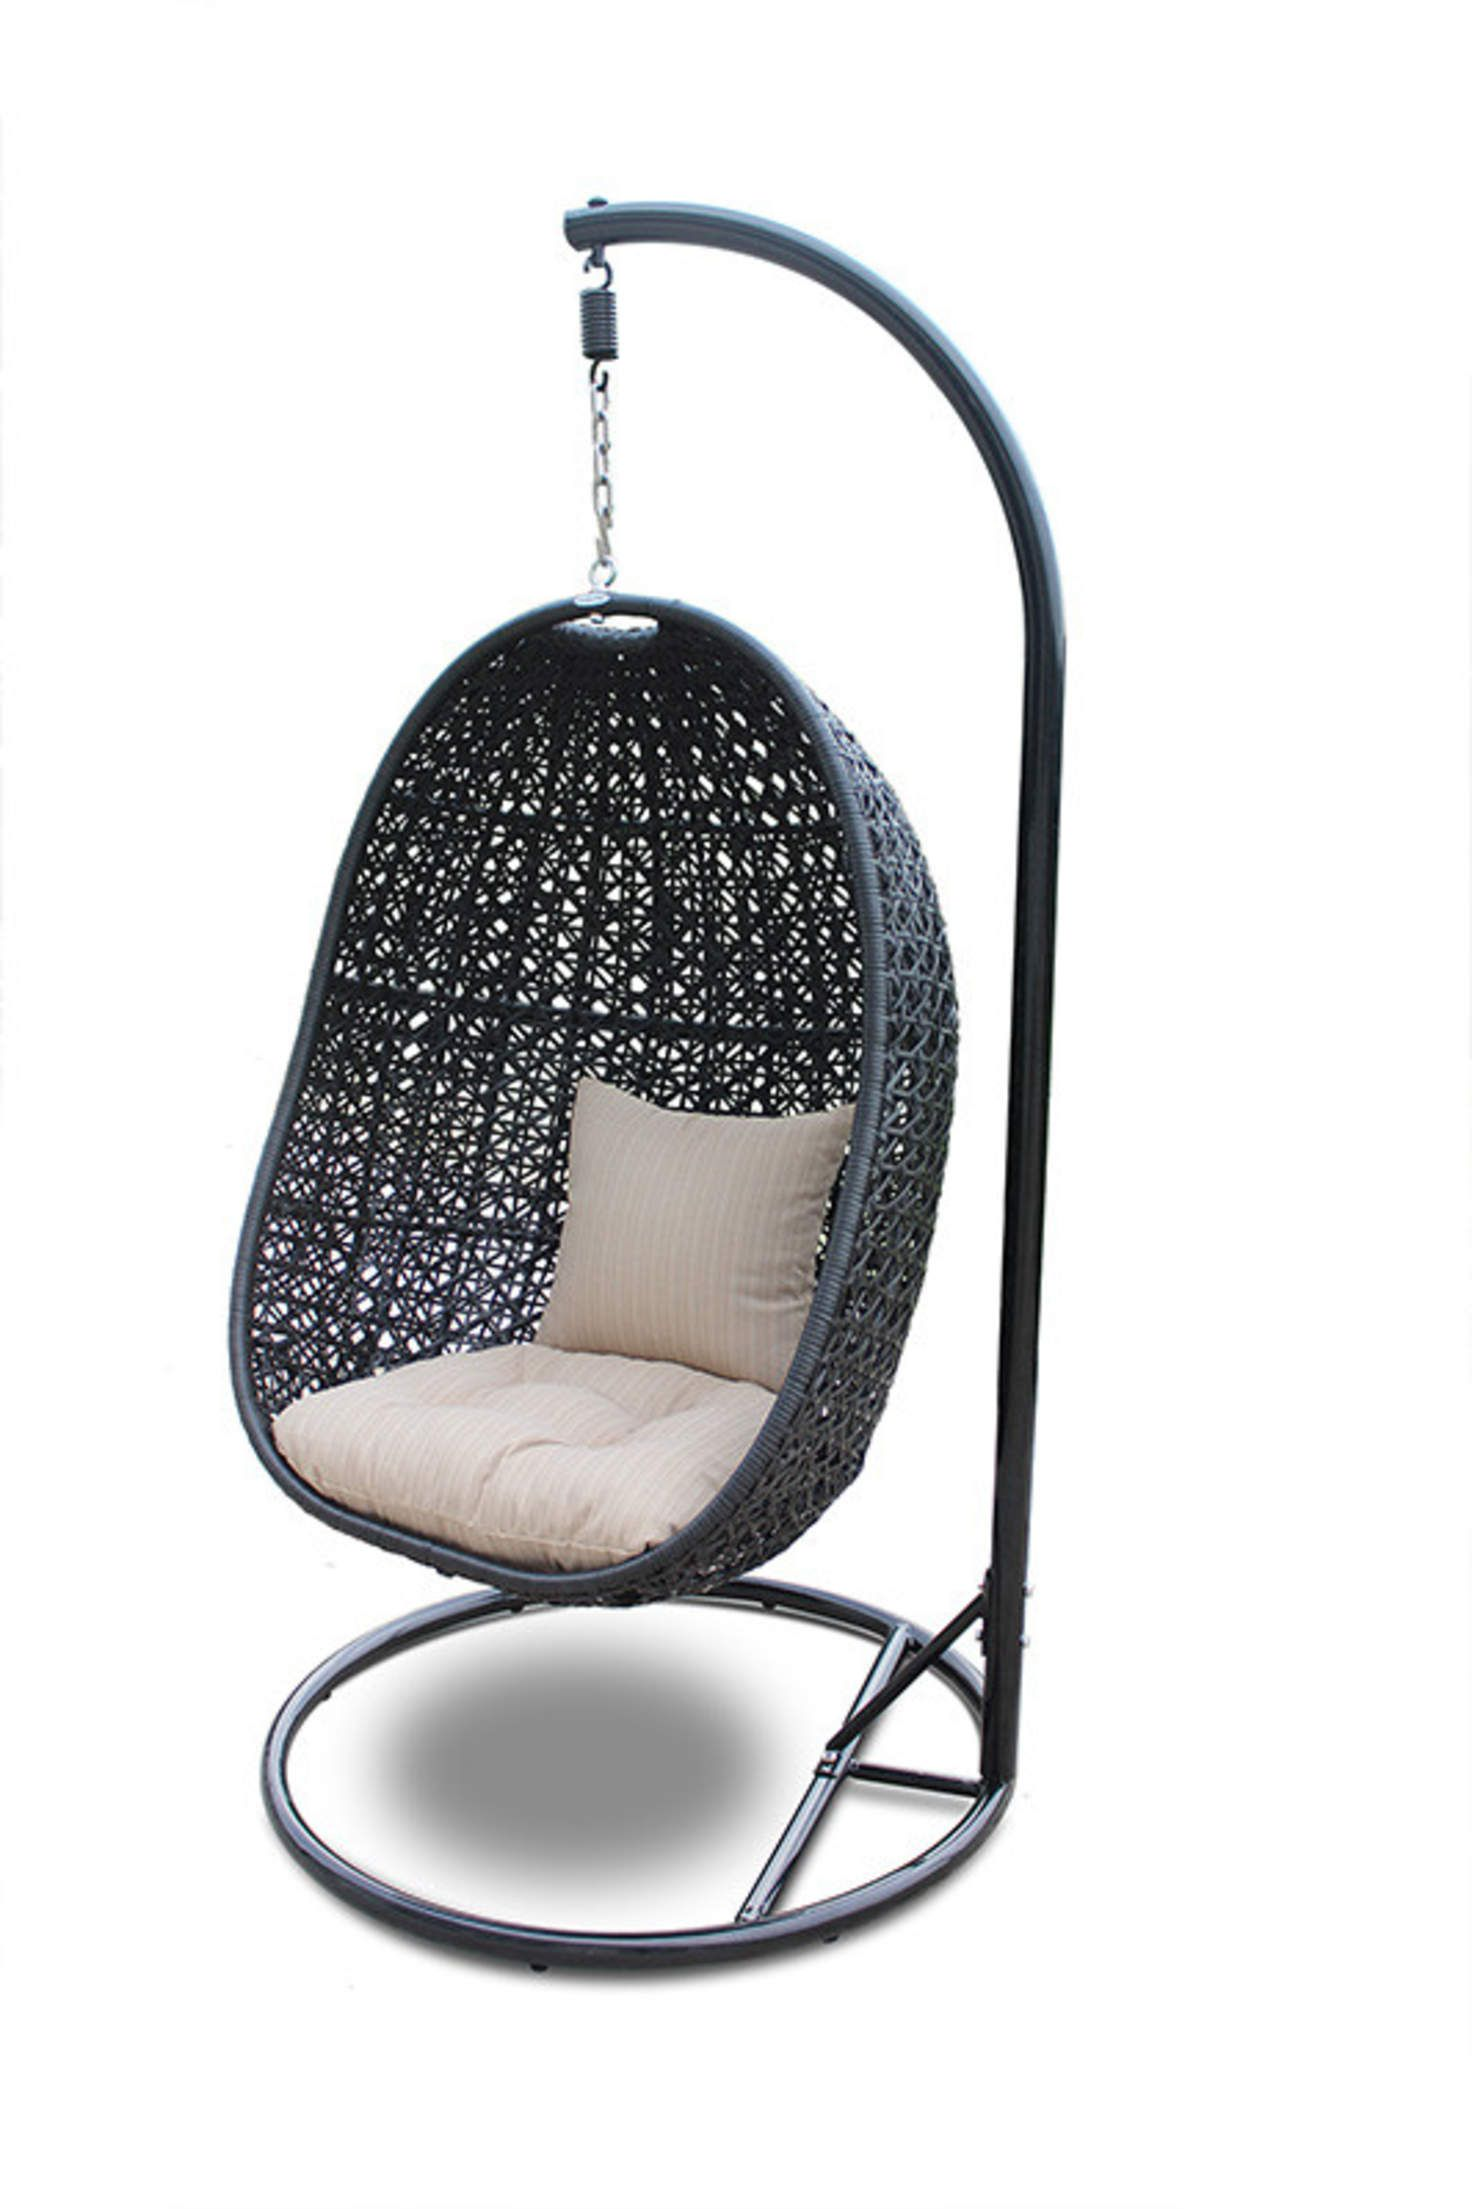 Hanging Egg Chairs Nimbus Outdoor Hanging Chair Home Inspiration